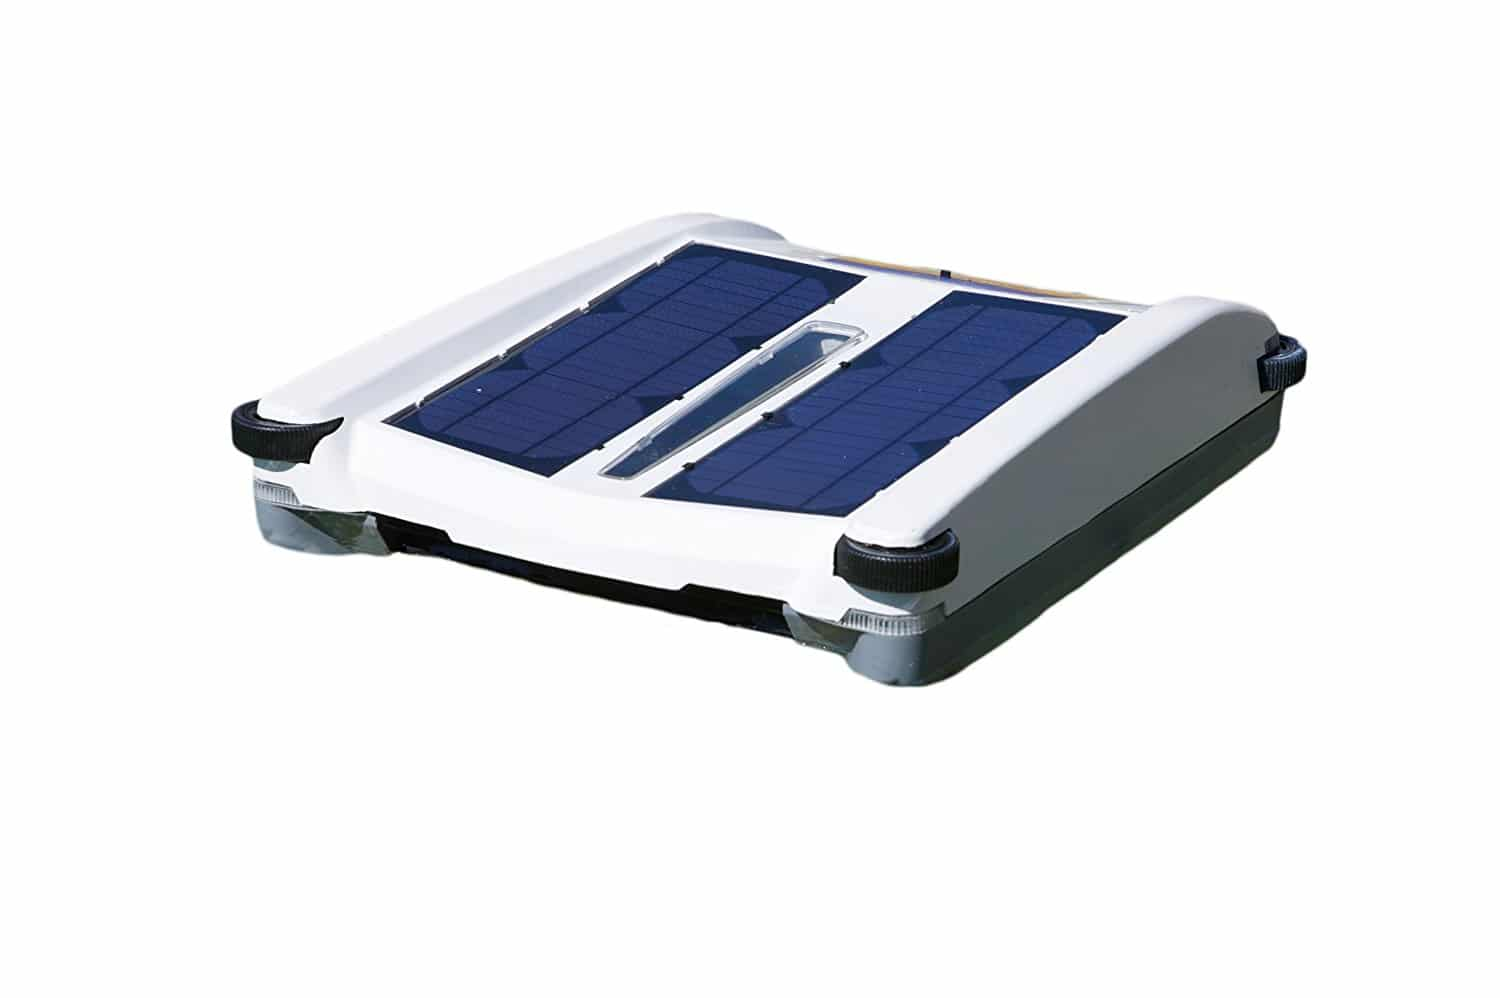 Top 3 Best Solar Pool Cleaner Reviews On The Market 2019